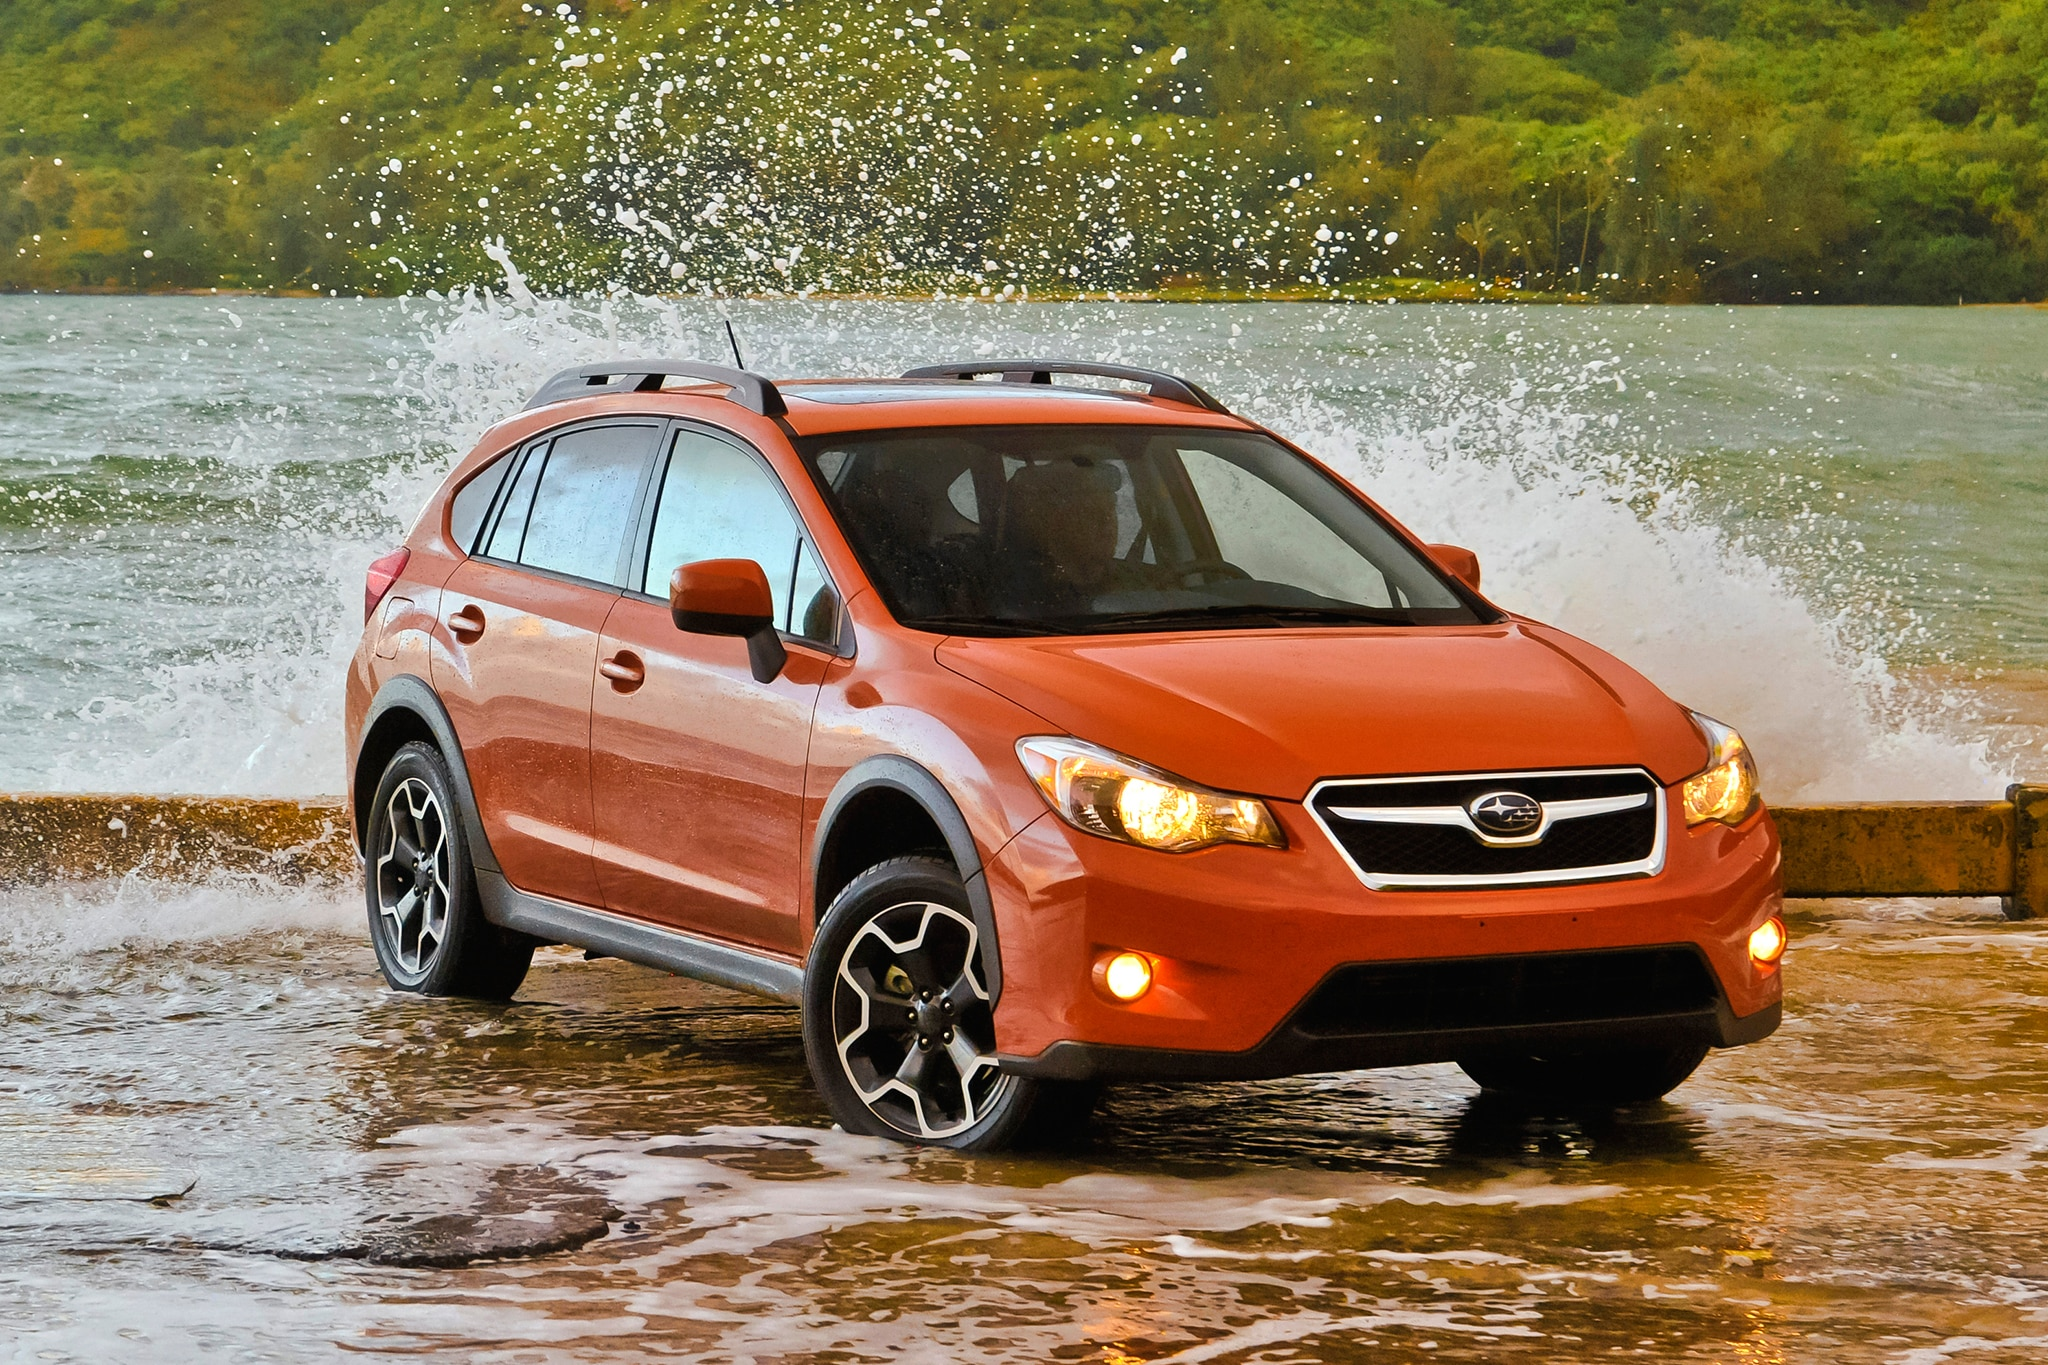 2015 subaru xv crosstrek gains eyesight new infotainment system. Black Bedroom Furniture Sets. Home Design Ideas